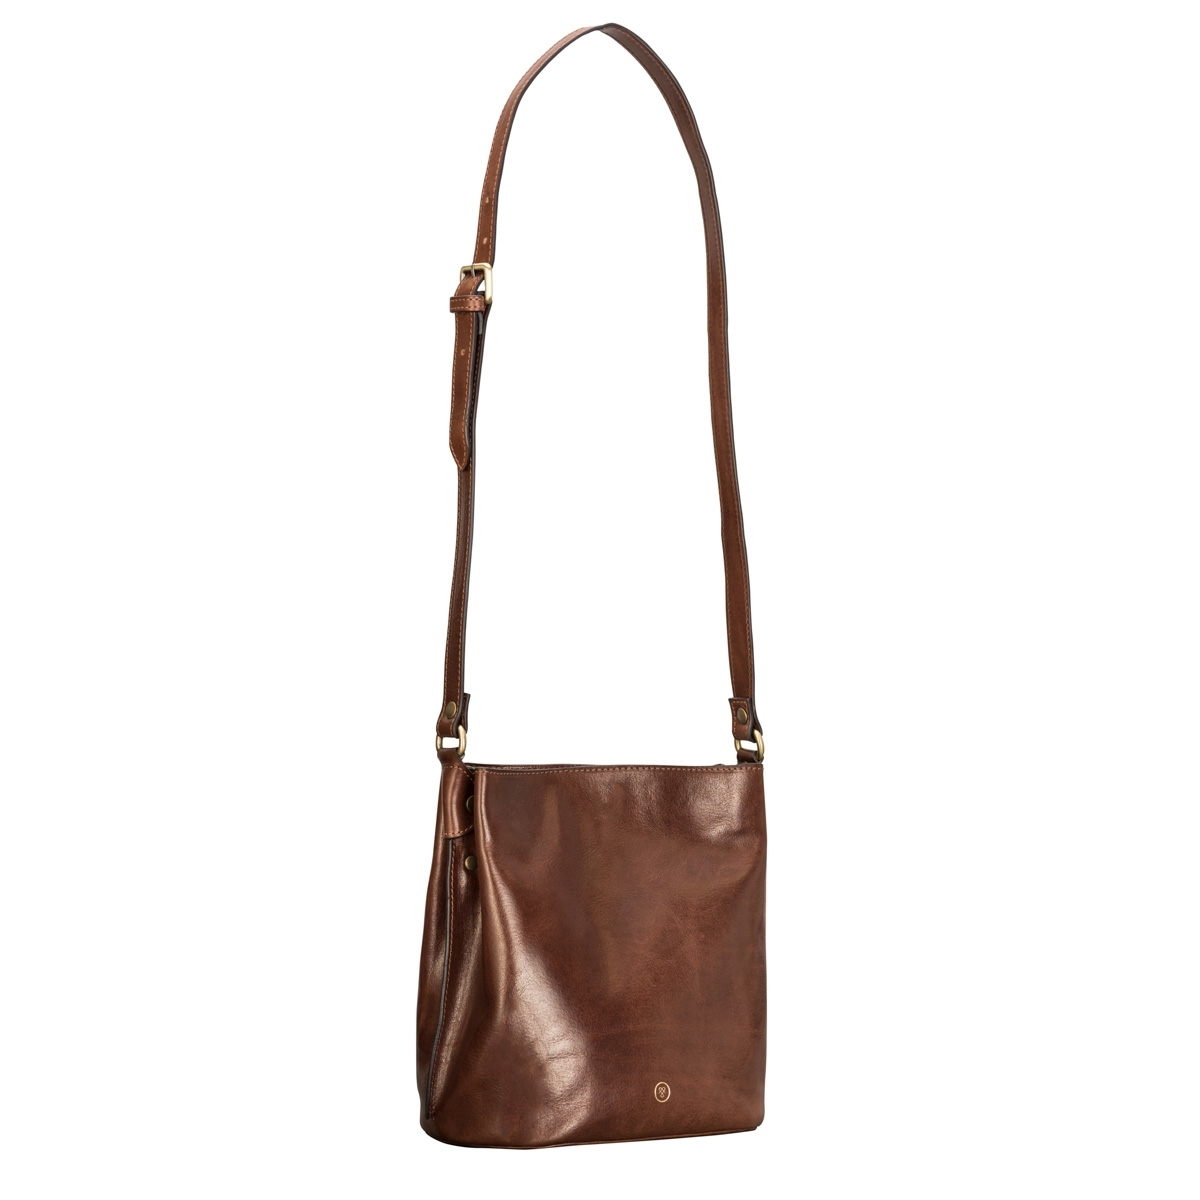 MAXWELL SCOTT BAGS Women S Finely Crafted Tan Leather Bucket Bag